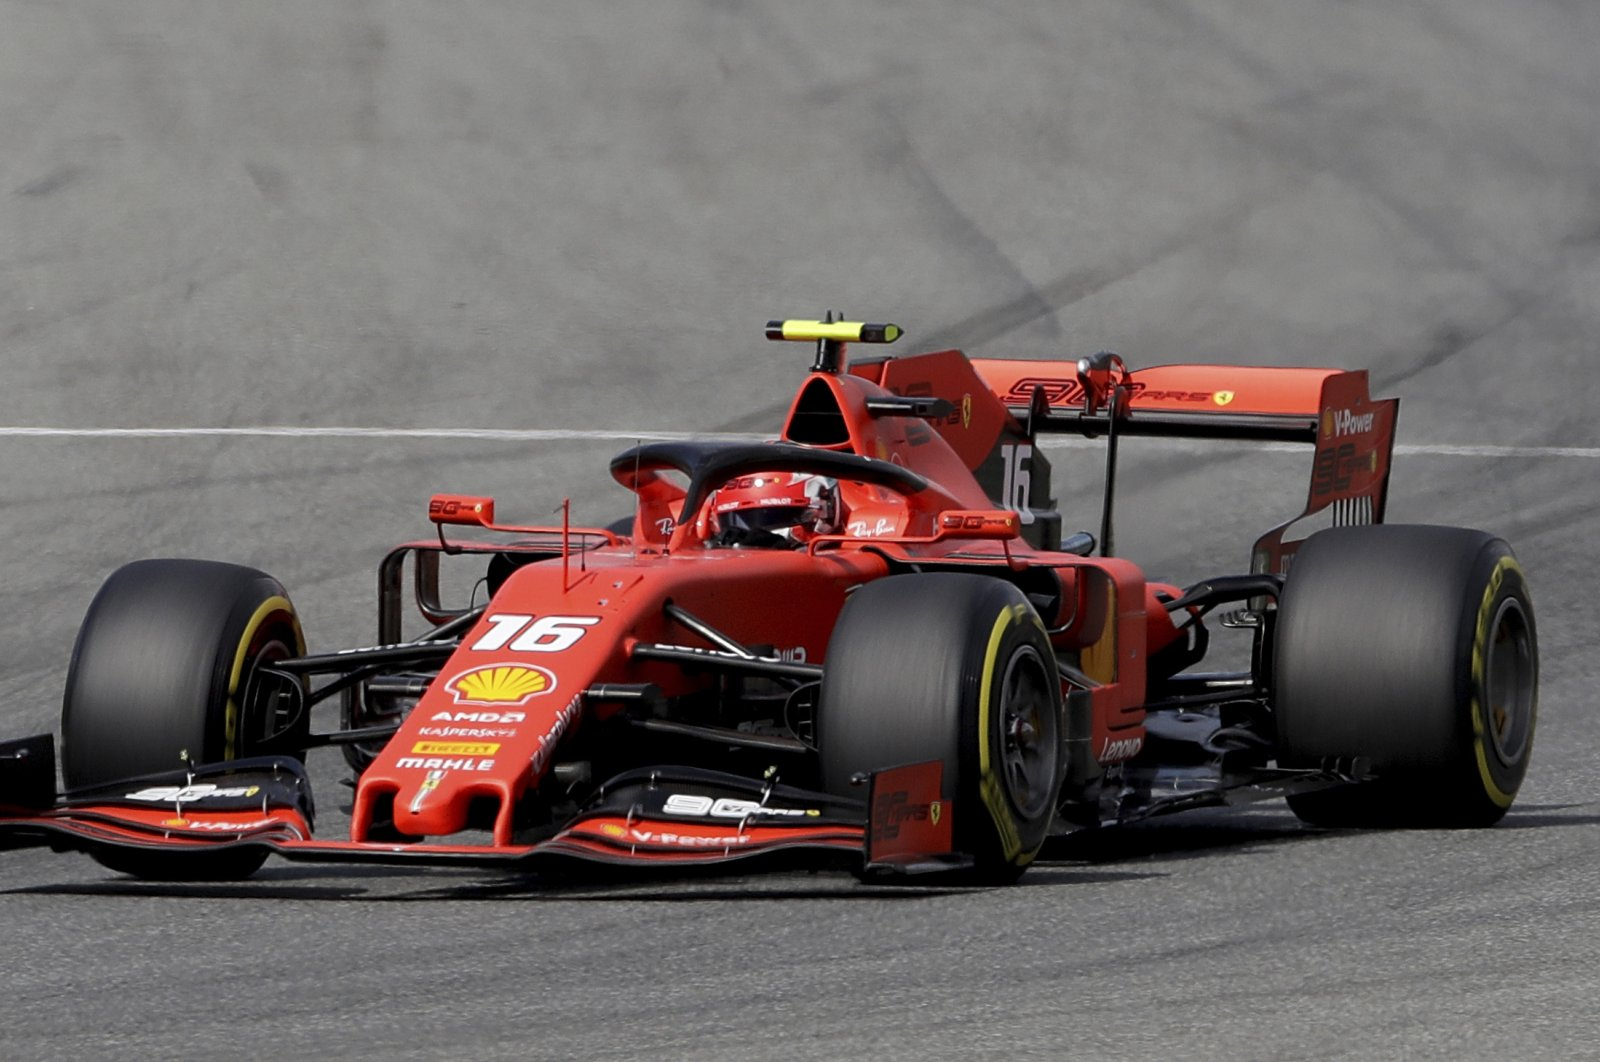 Ferrari driver Charles Leclerc steers his car during the qualifying session at the Italian Grand Prix, Monza, Italy, Sept. 7, 2019. (AP Photo)